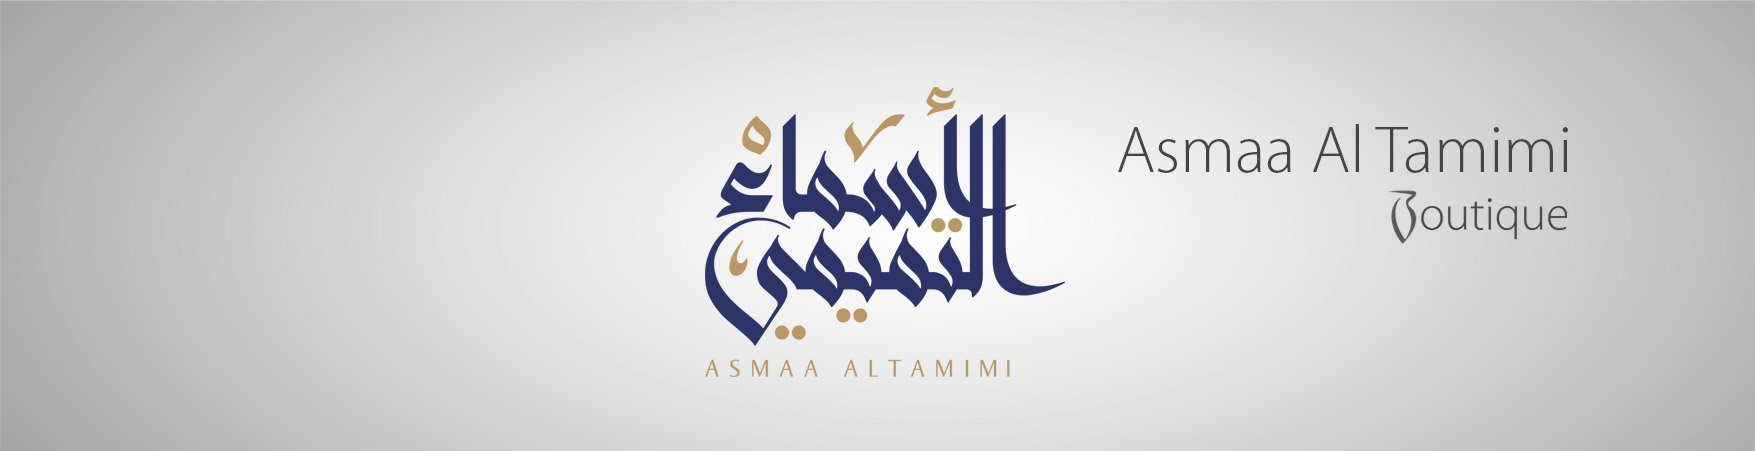 Asmaa AlTamimi Boutique